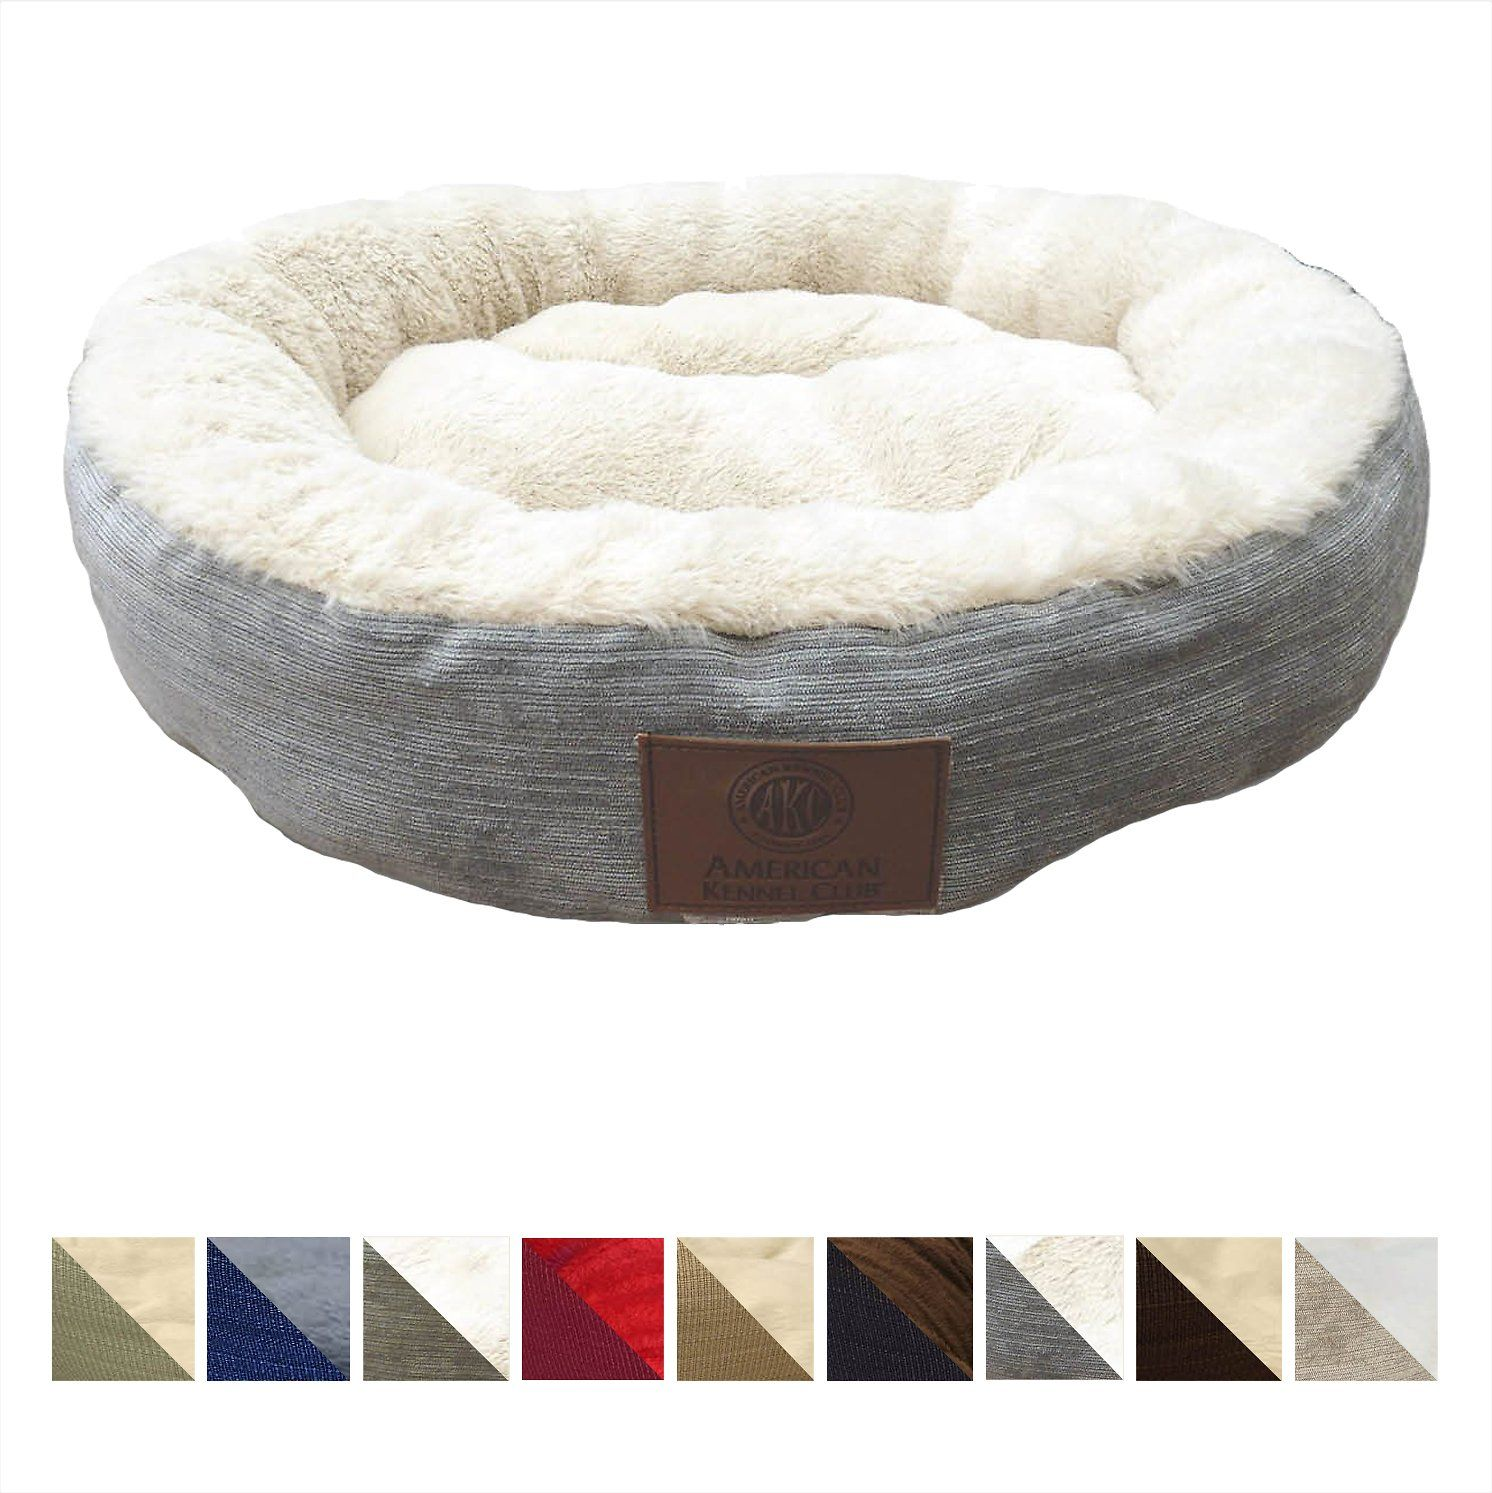 Stupendous American Kennel Club Casablanca Round Pet Bed Blue Chewy Theyellowbook Wood Chair Design Ideas Theyellowbookinfo